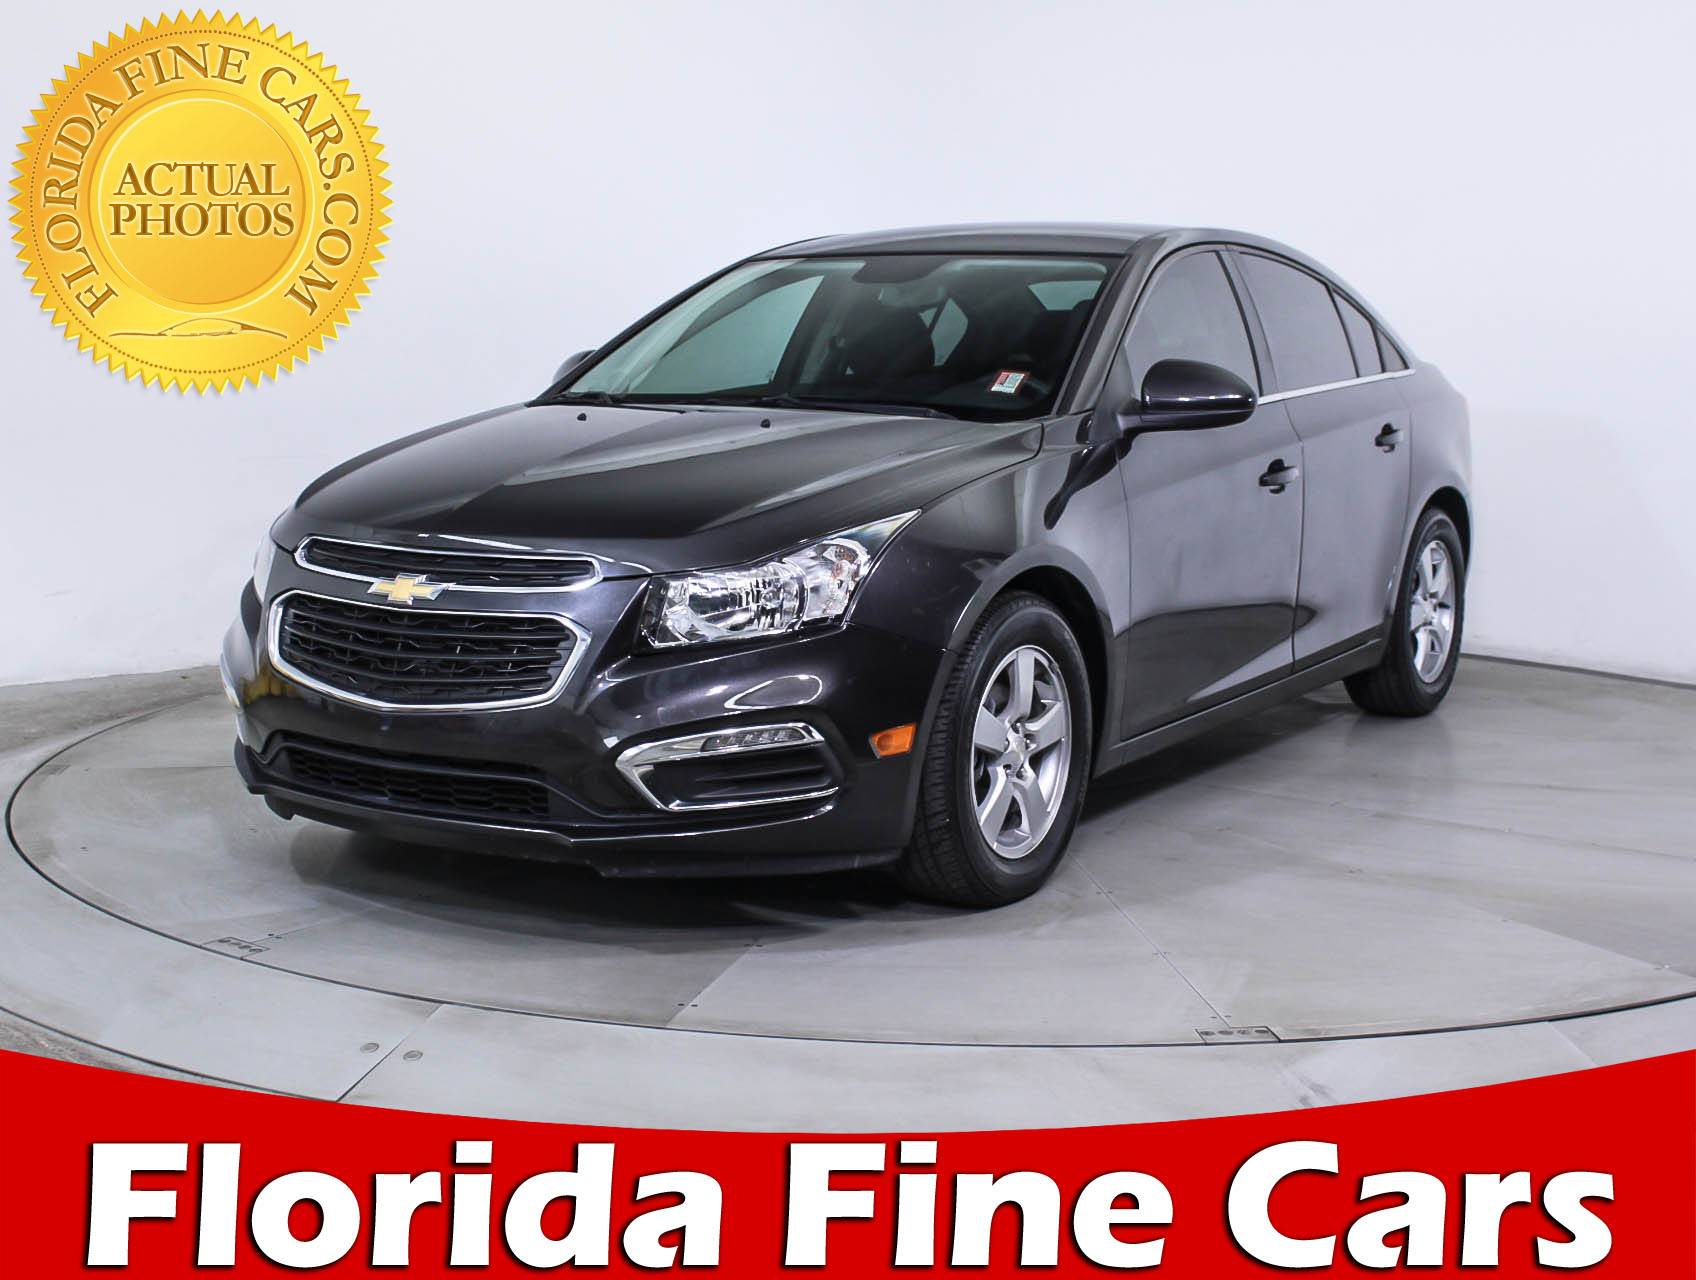 used 2015 chevrolet cruze 1lt sedan for sale in miami fl